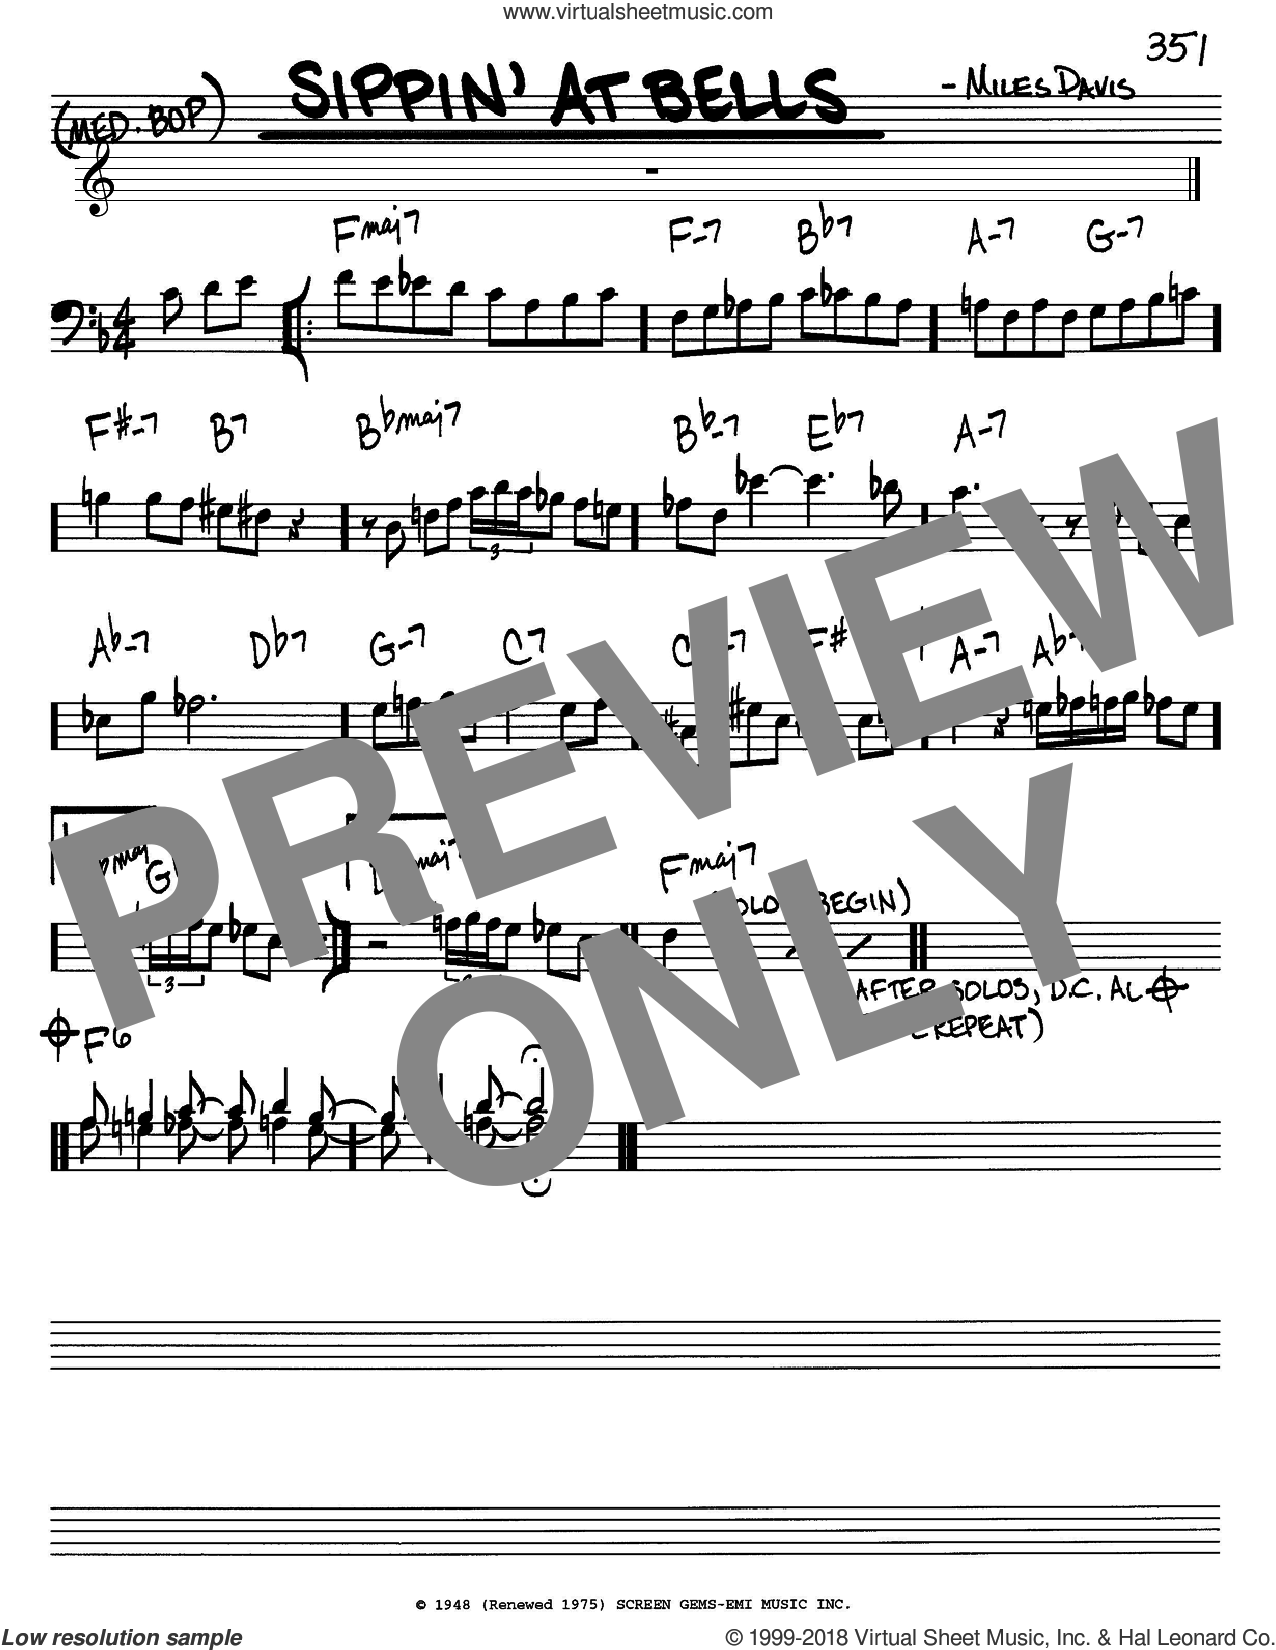 Sippin' At Bells sheet music for voice and other instruments (bass clef) by Miles Davis, intermediate skill level